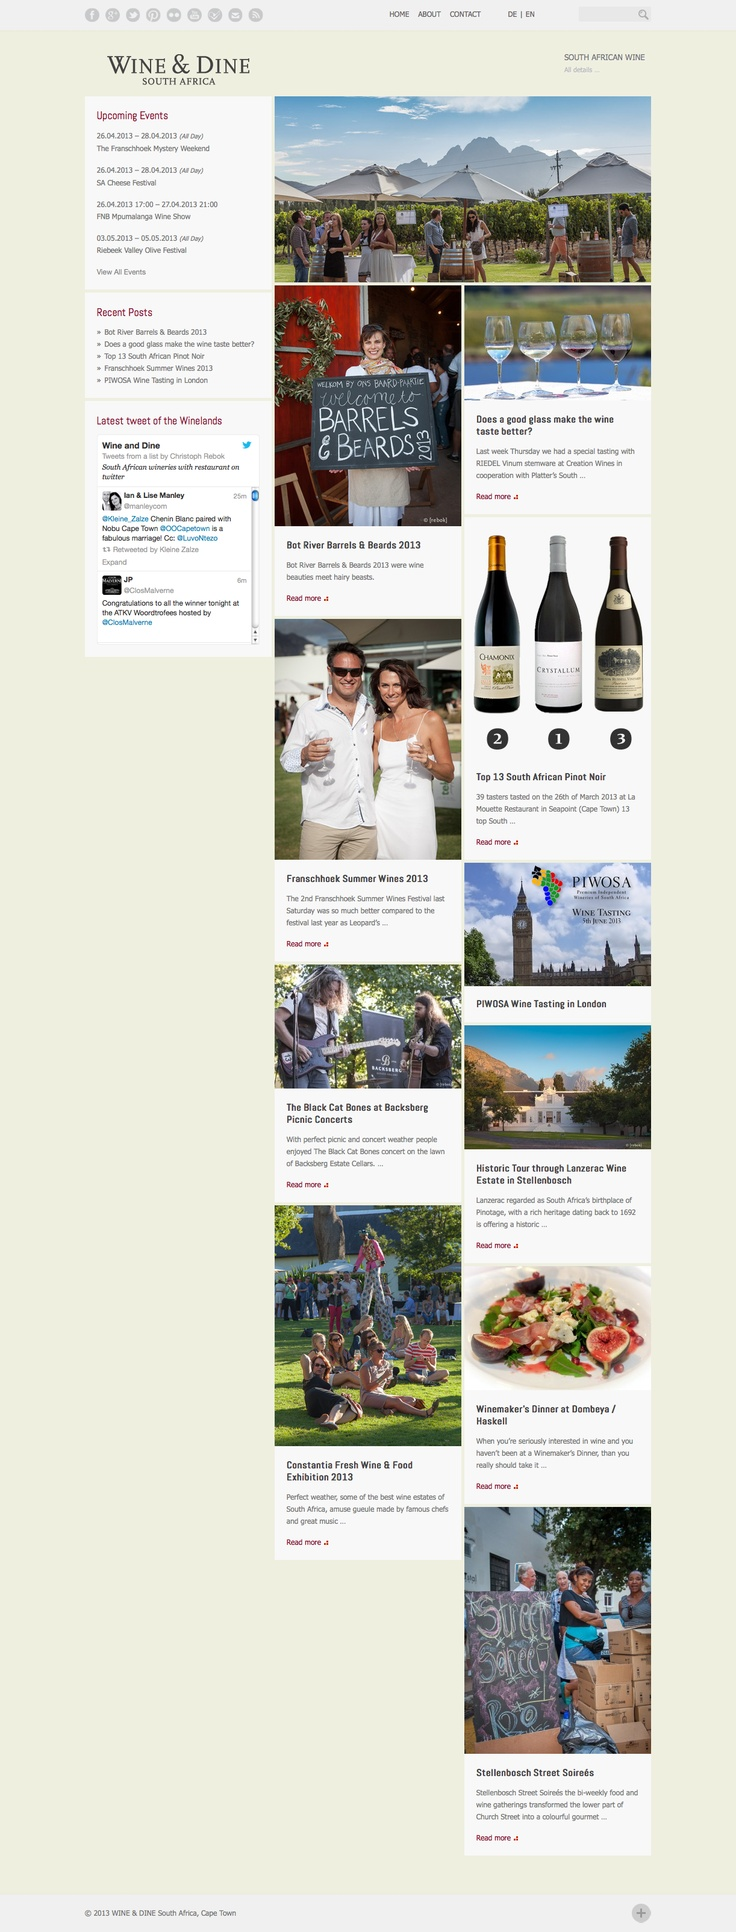 WINE & DINE South Africa website http://wineanddinesouthafrica.com